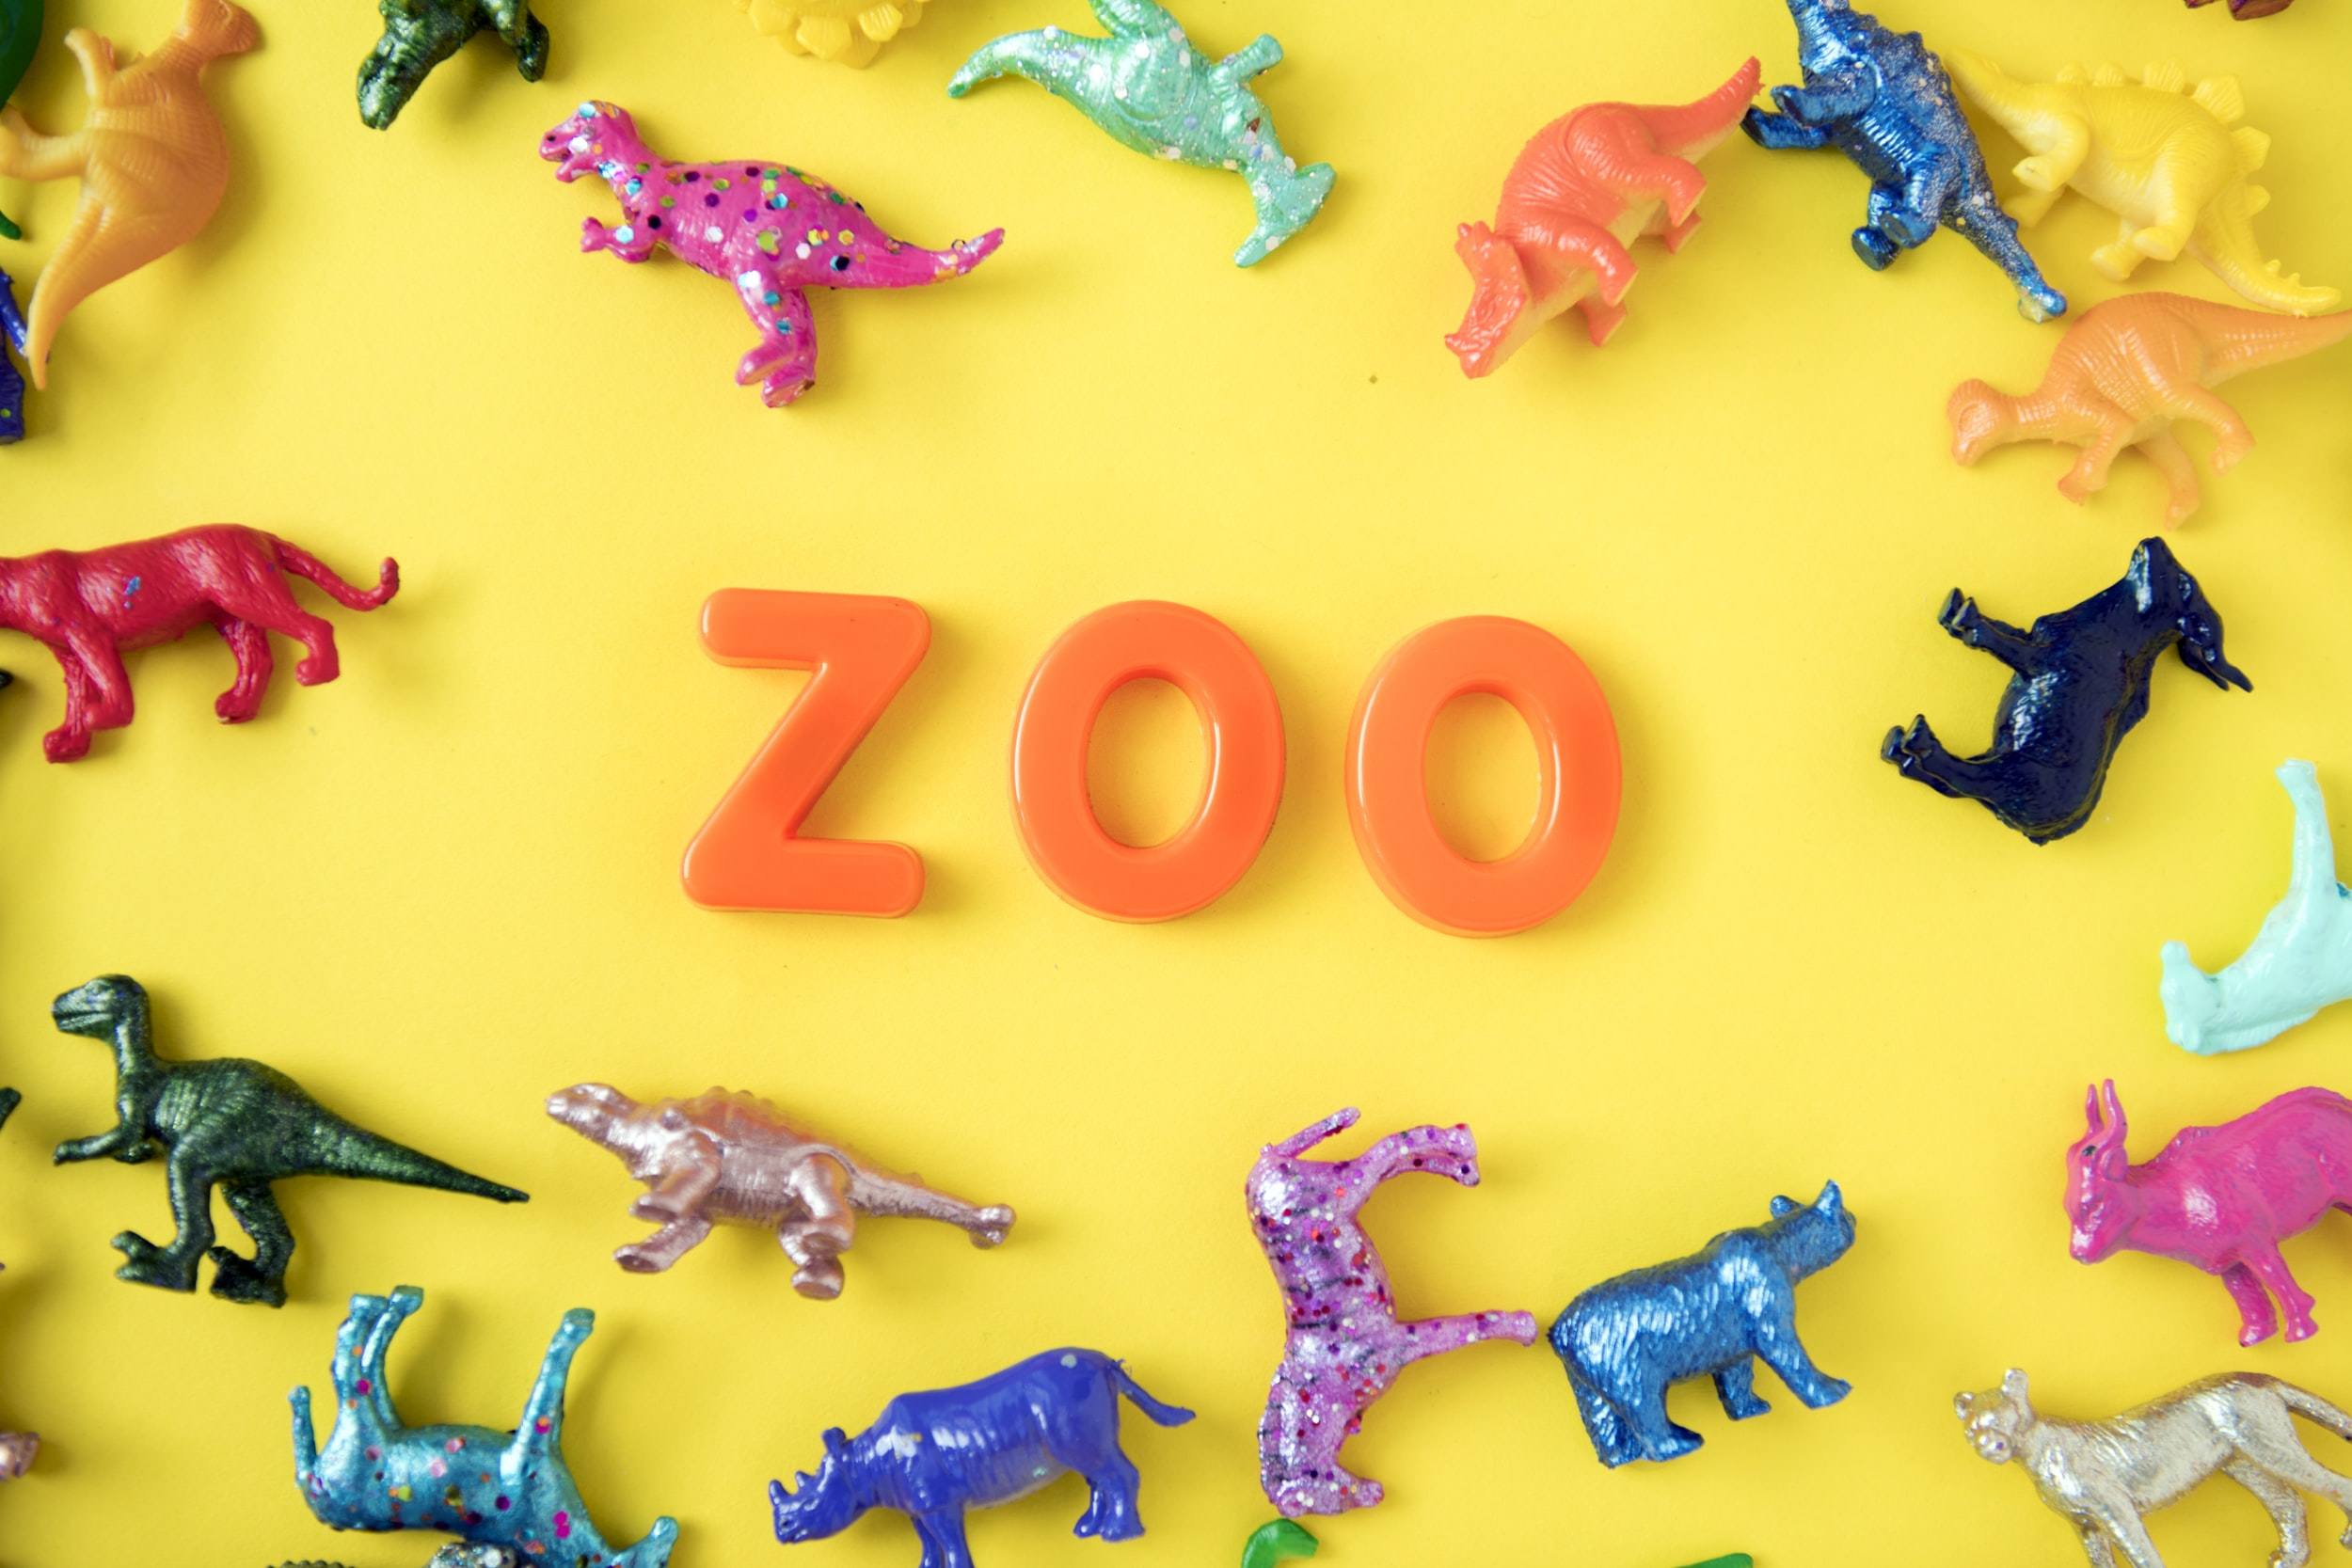 zoo animal plastic toy collection